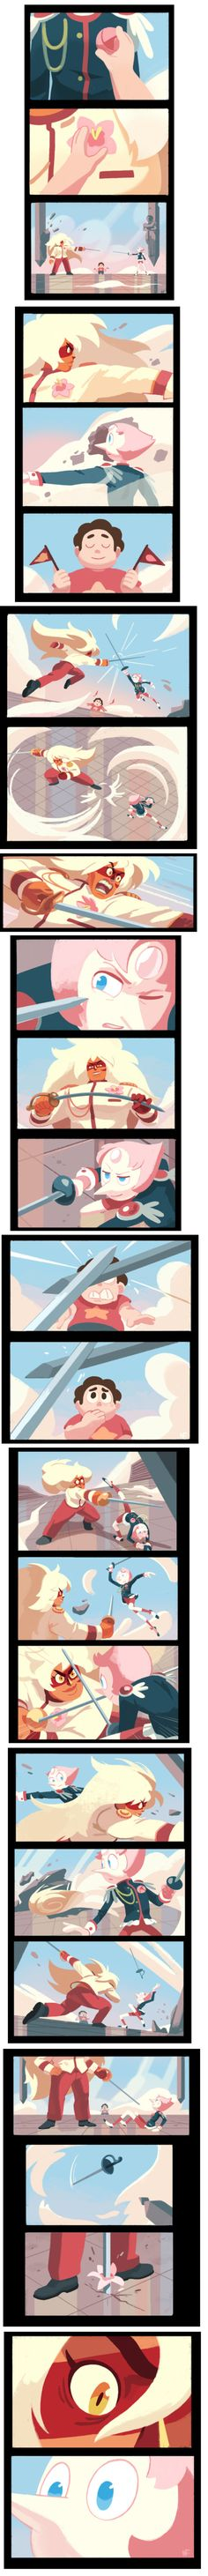 """do think it's cool that pearl and jasper are both famed war veteran dual-wielding gems, I'd love to see them challenge/talk to each other in the future"""" White Diamond and Pink Diamond eye design prediction Steven Universe Pictures, Steven Universe Funny, Steven Univese, Pearl Steven, Perla Steven Universe, White Diamond Steven Universe, Jasper Steven Universe, Revolutionary Girl Utena, Universe Art"""